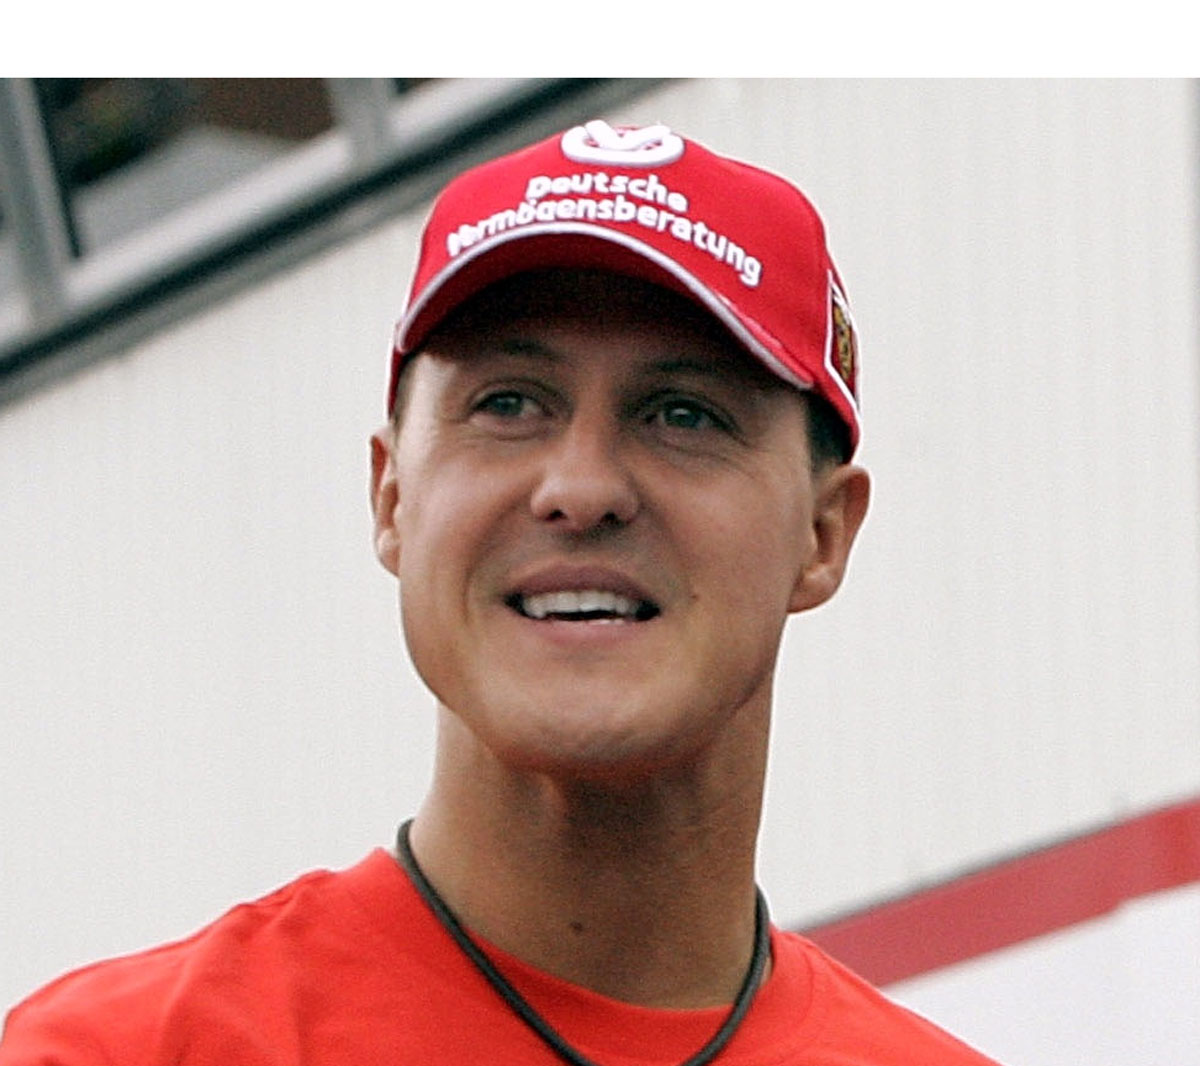 formula 1 world michael schumacher pictures and bio. Black Bedroom Furniture Sets. Home Design Ideas